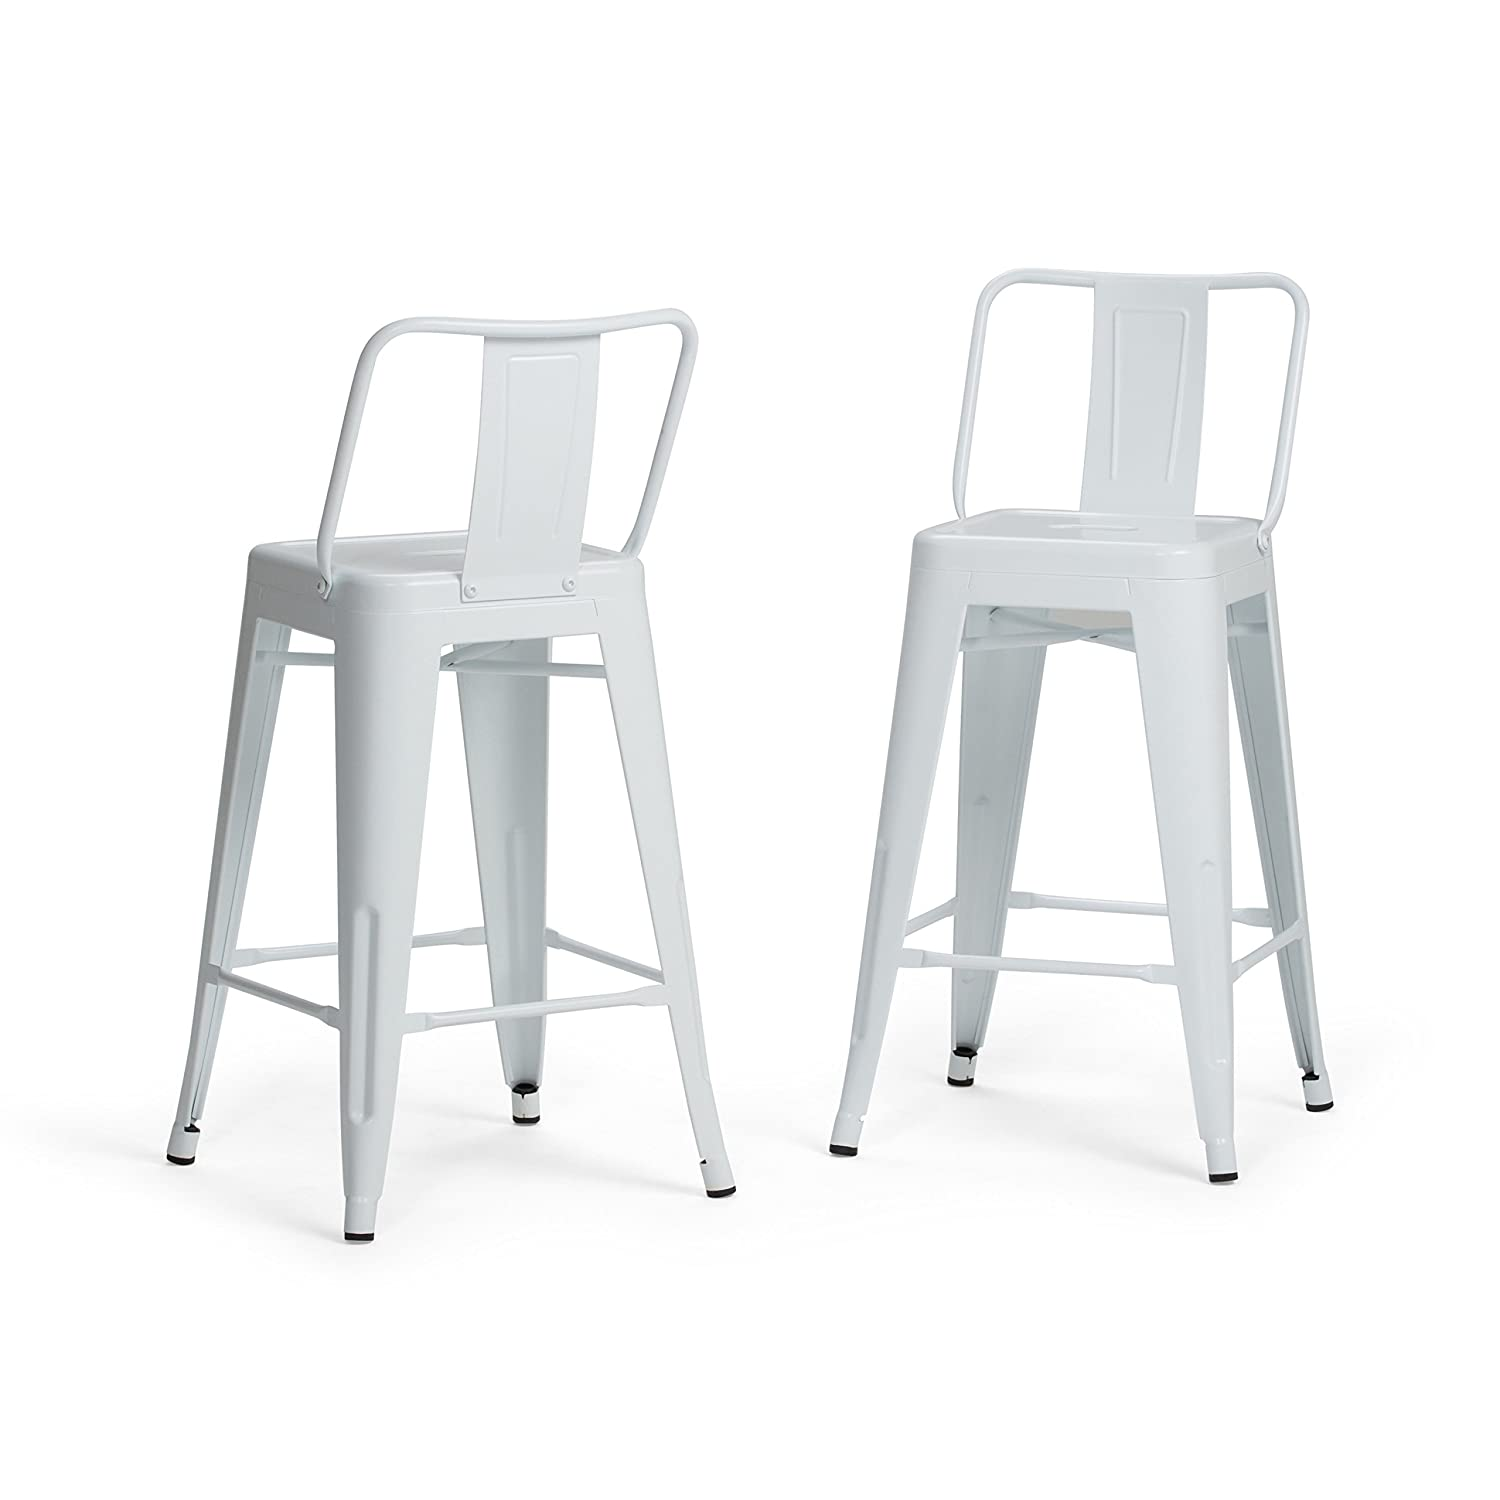 Simpli Home AXCRAY24-01-WH Rayne Industrial Metal 24 inch Counter Height Stool Set of 2 in White